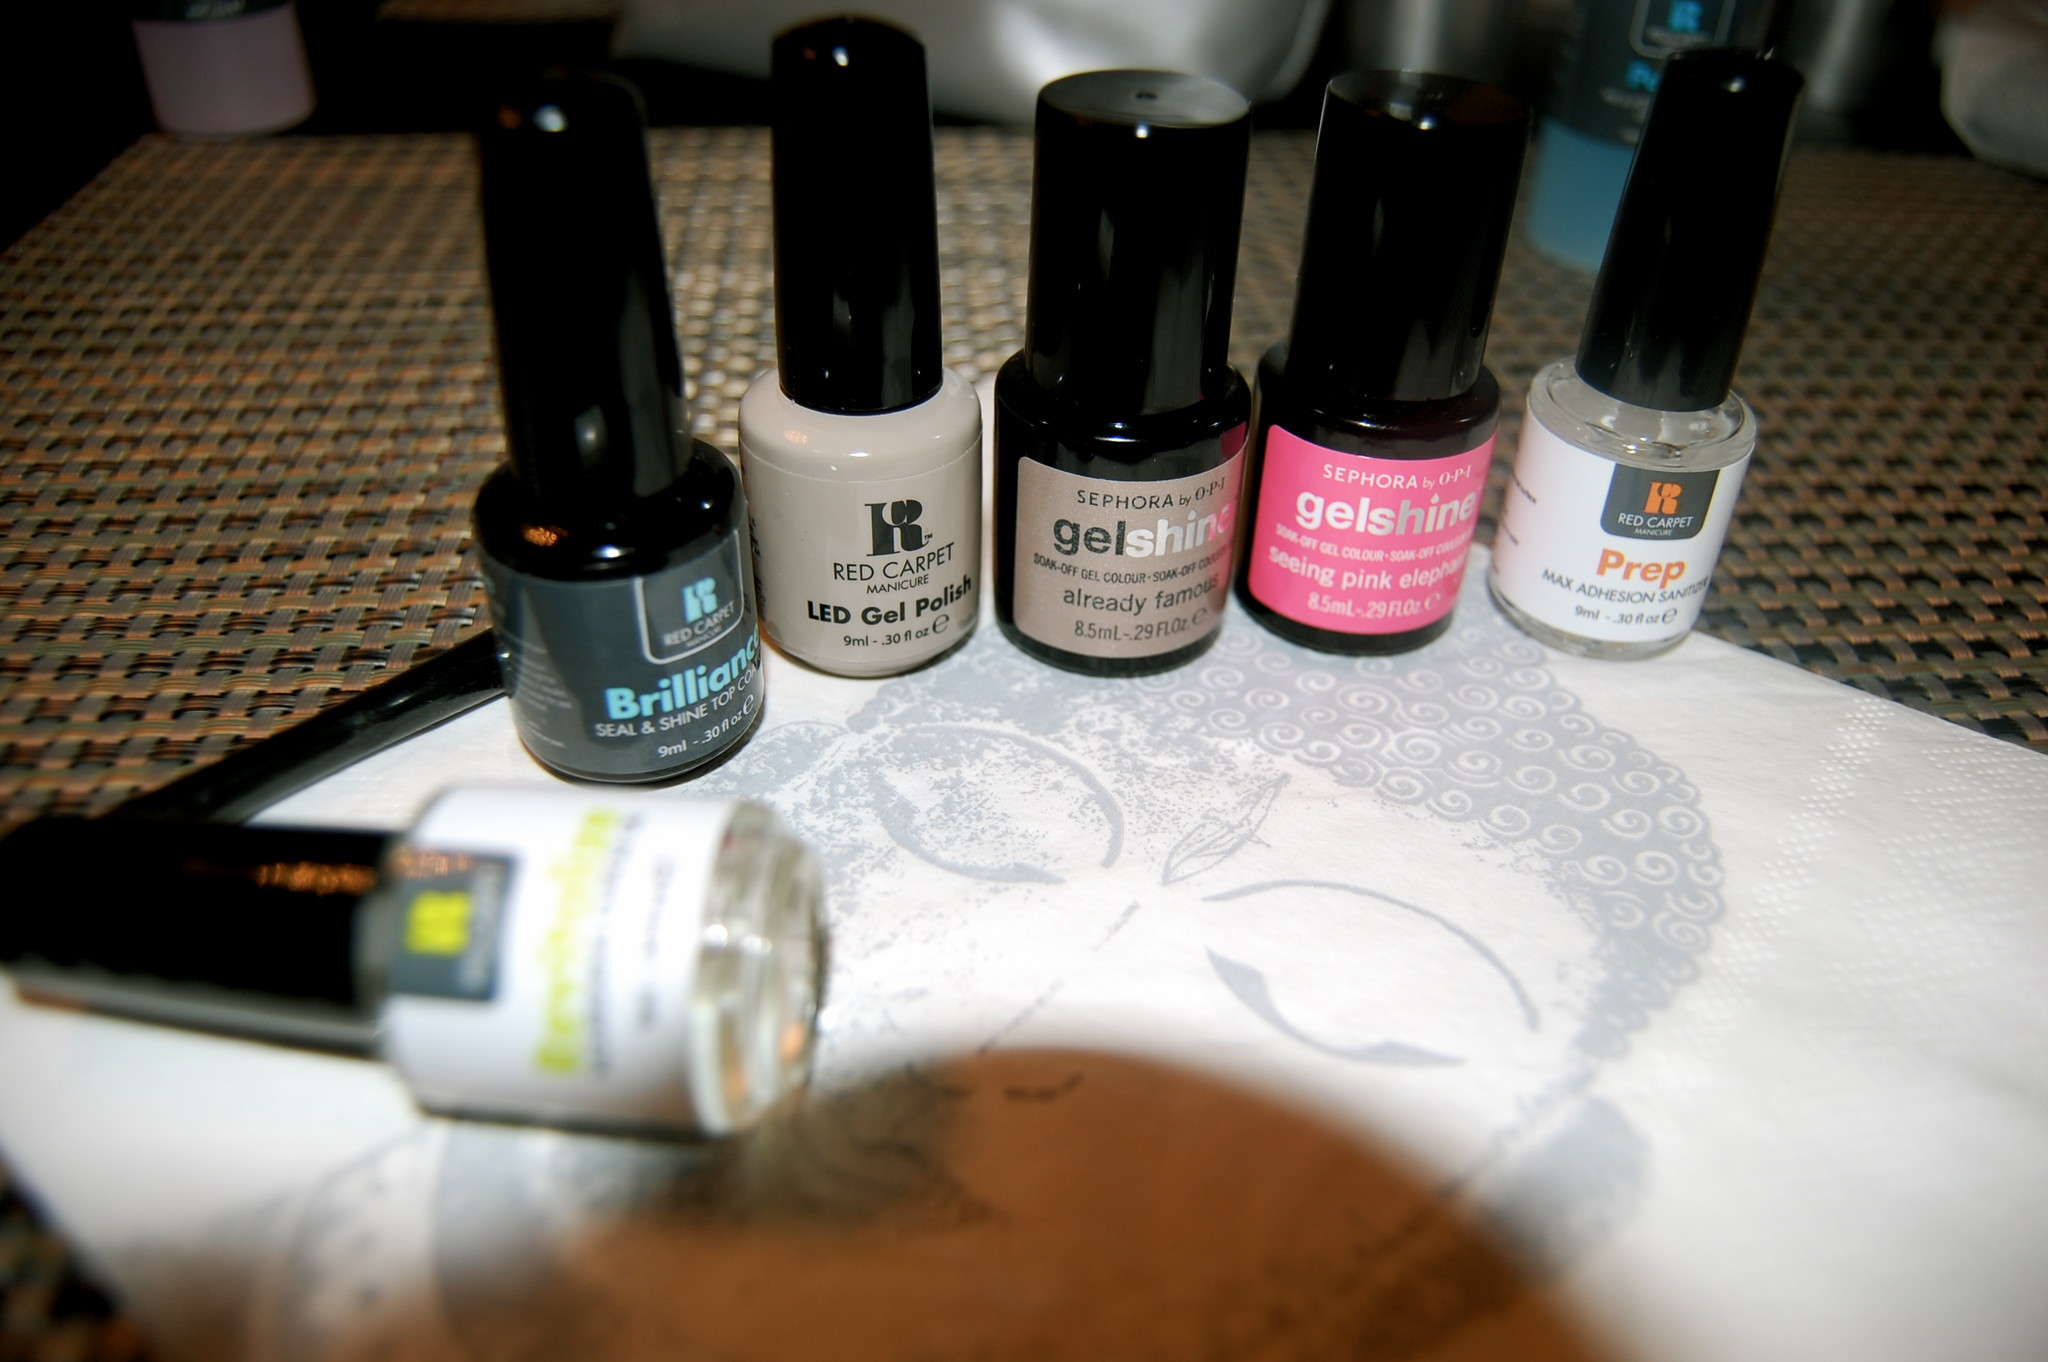 Lilia Gjerstad » Nail Bar at home?